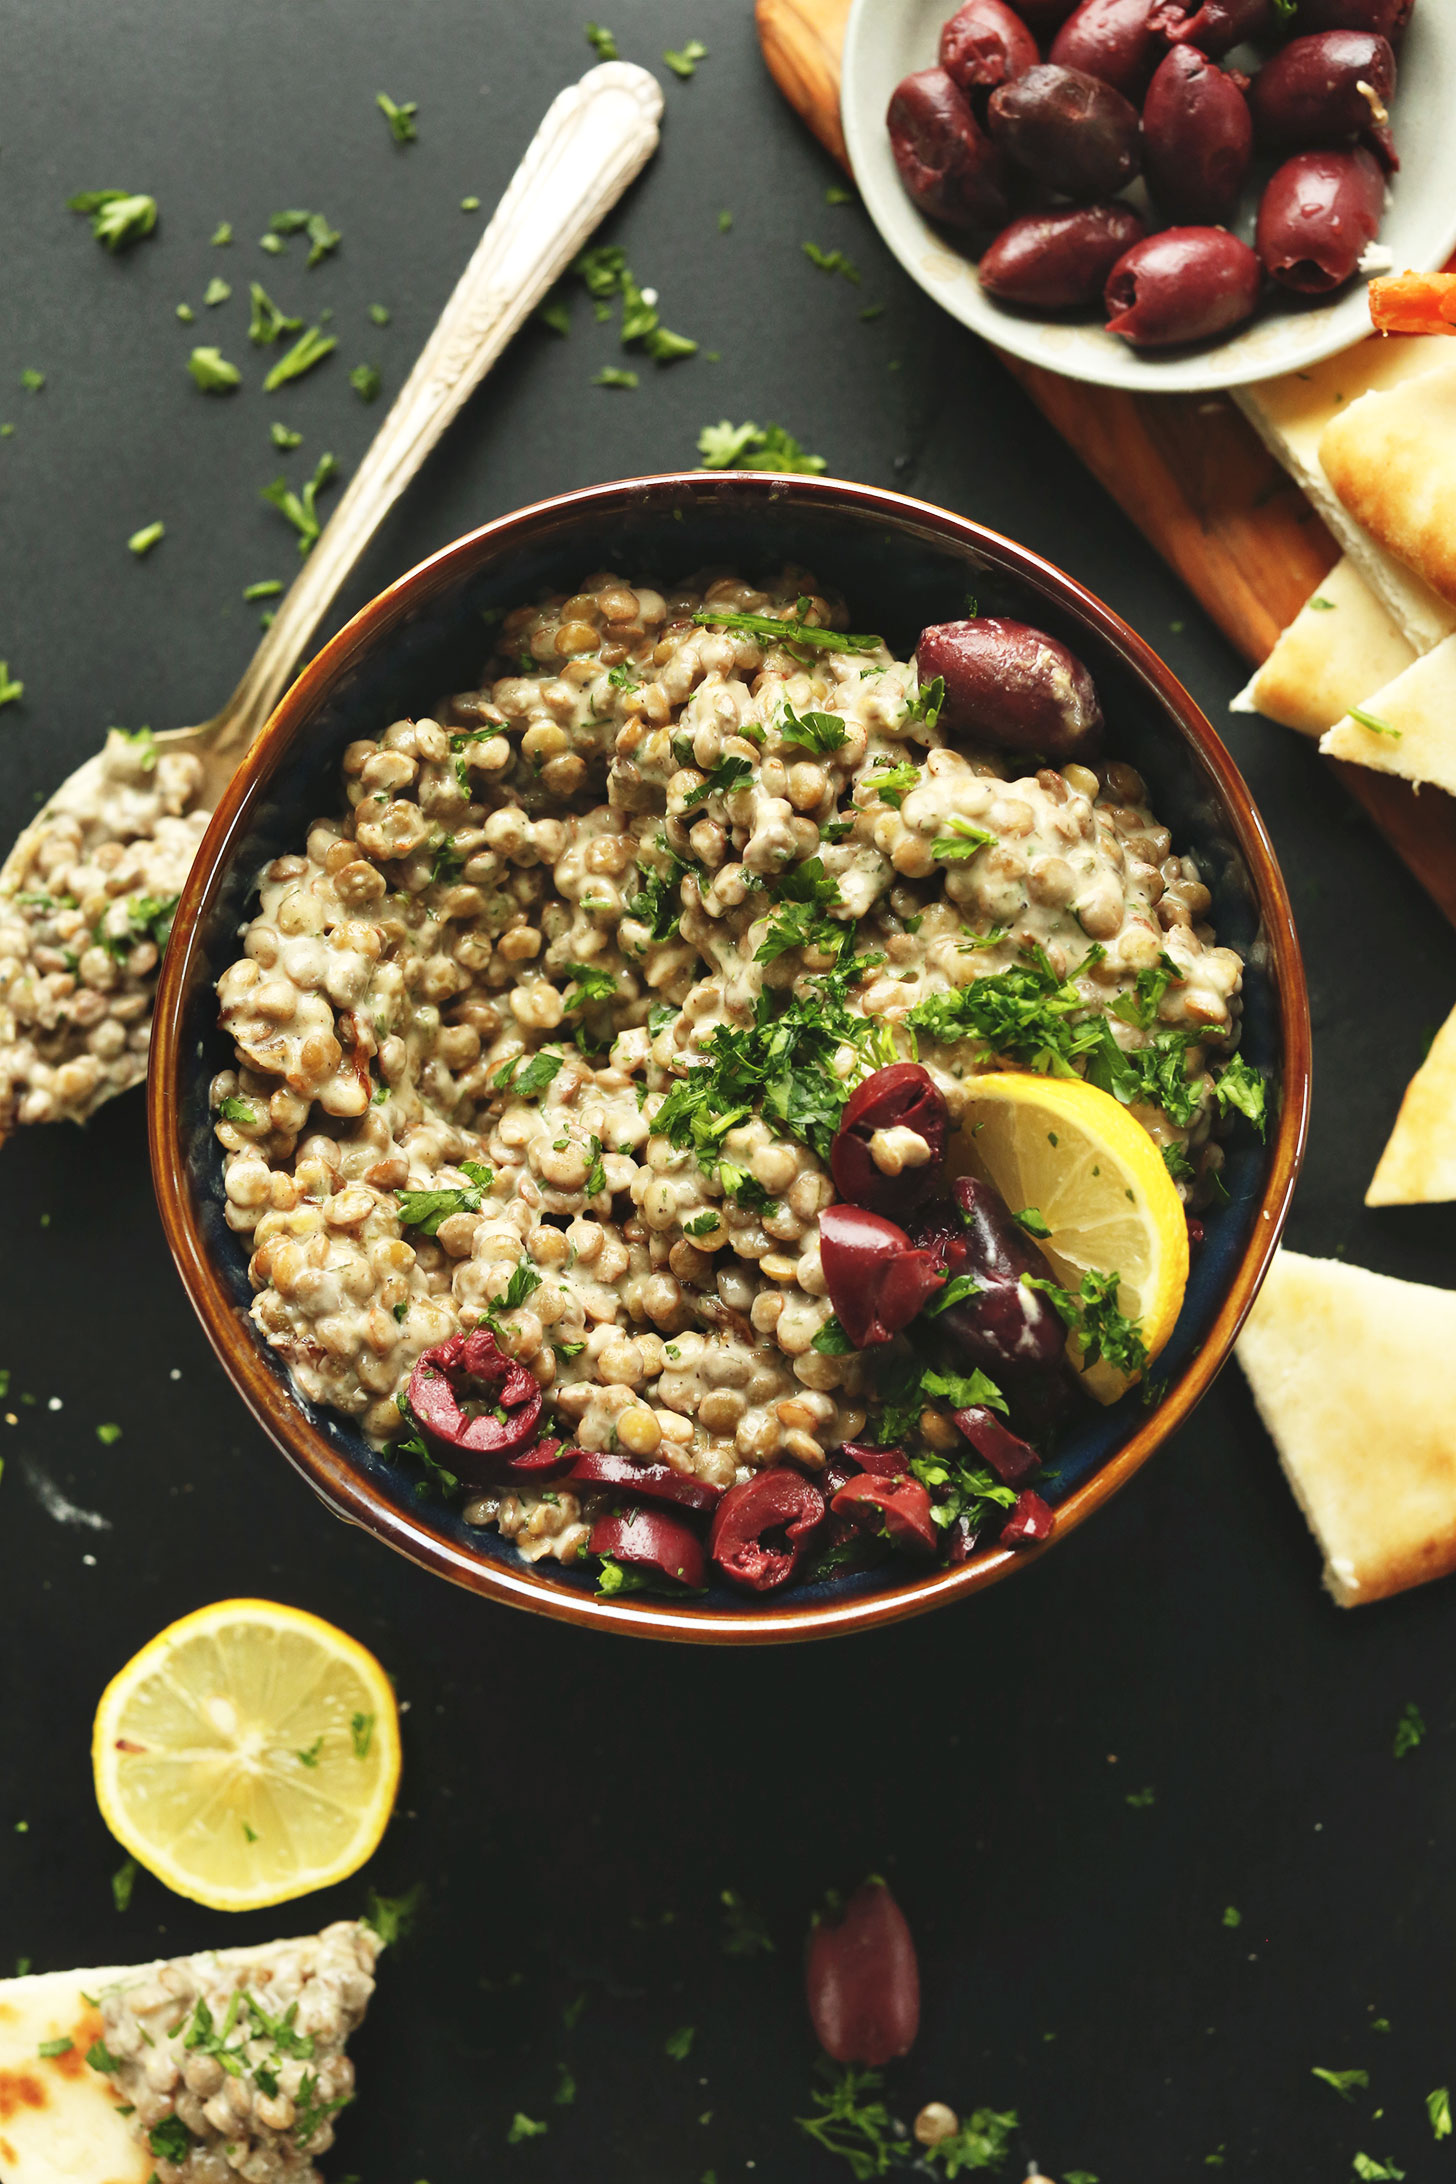 Bowl of our gluten-free vegan Mediterranean Lentil Dip made with shallot, garlic, hummus, lemon and tahini